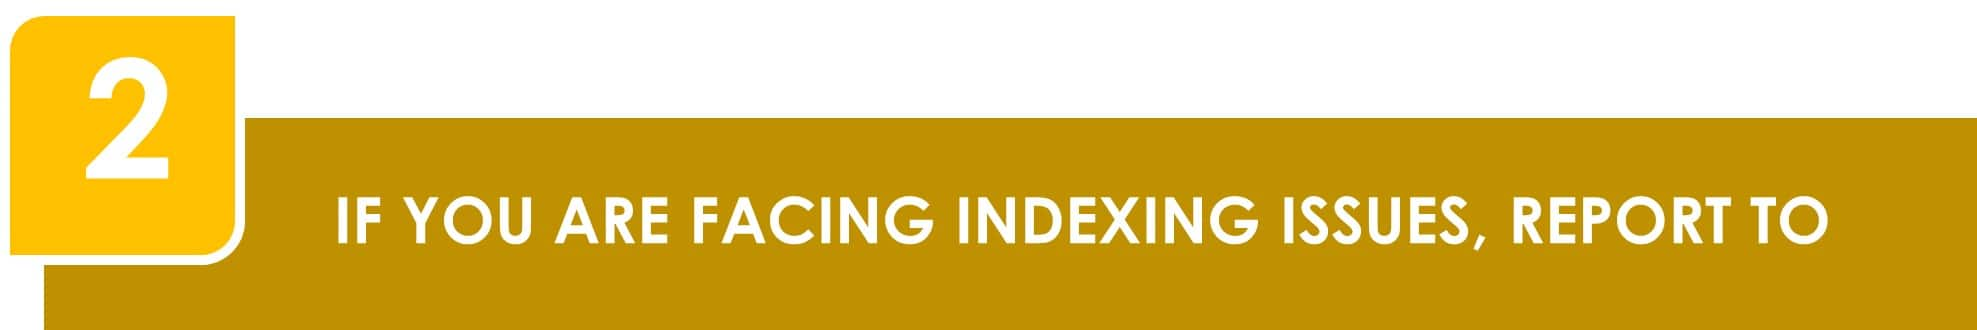 If you are facing indexing issues, report to Google